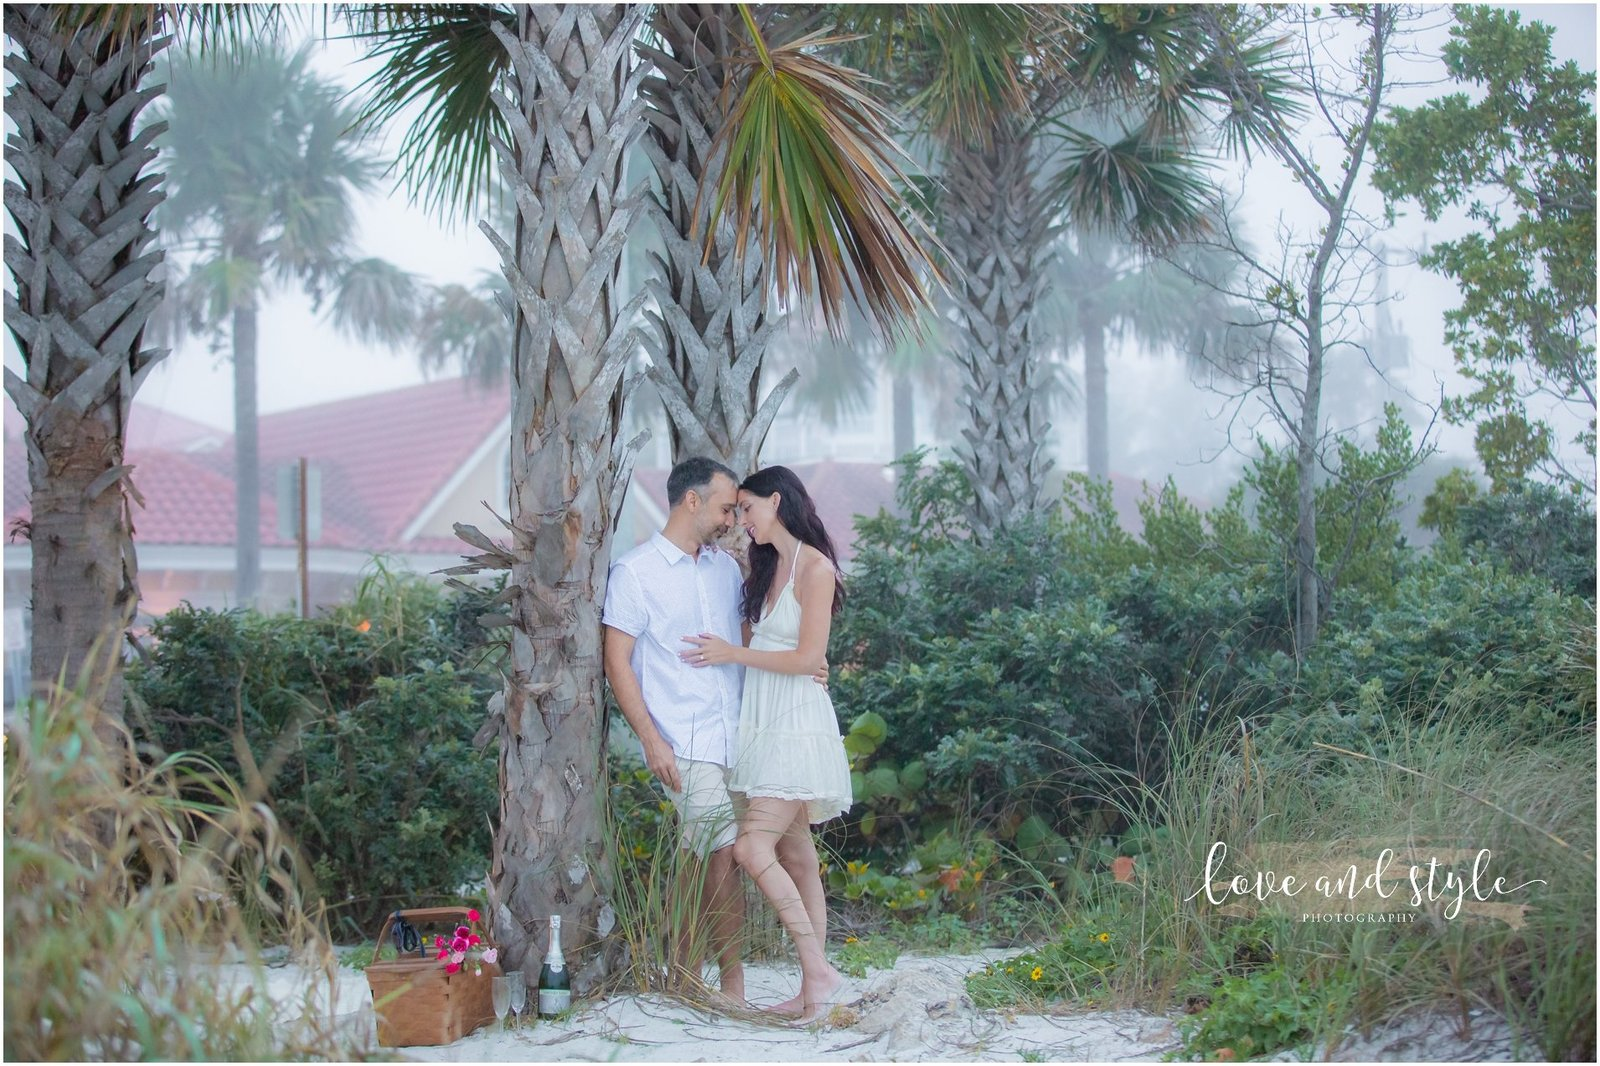 Engagement Photography with the couple by a palm tree on the bayside on Anna Maria Island, Florida